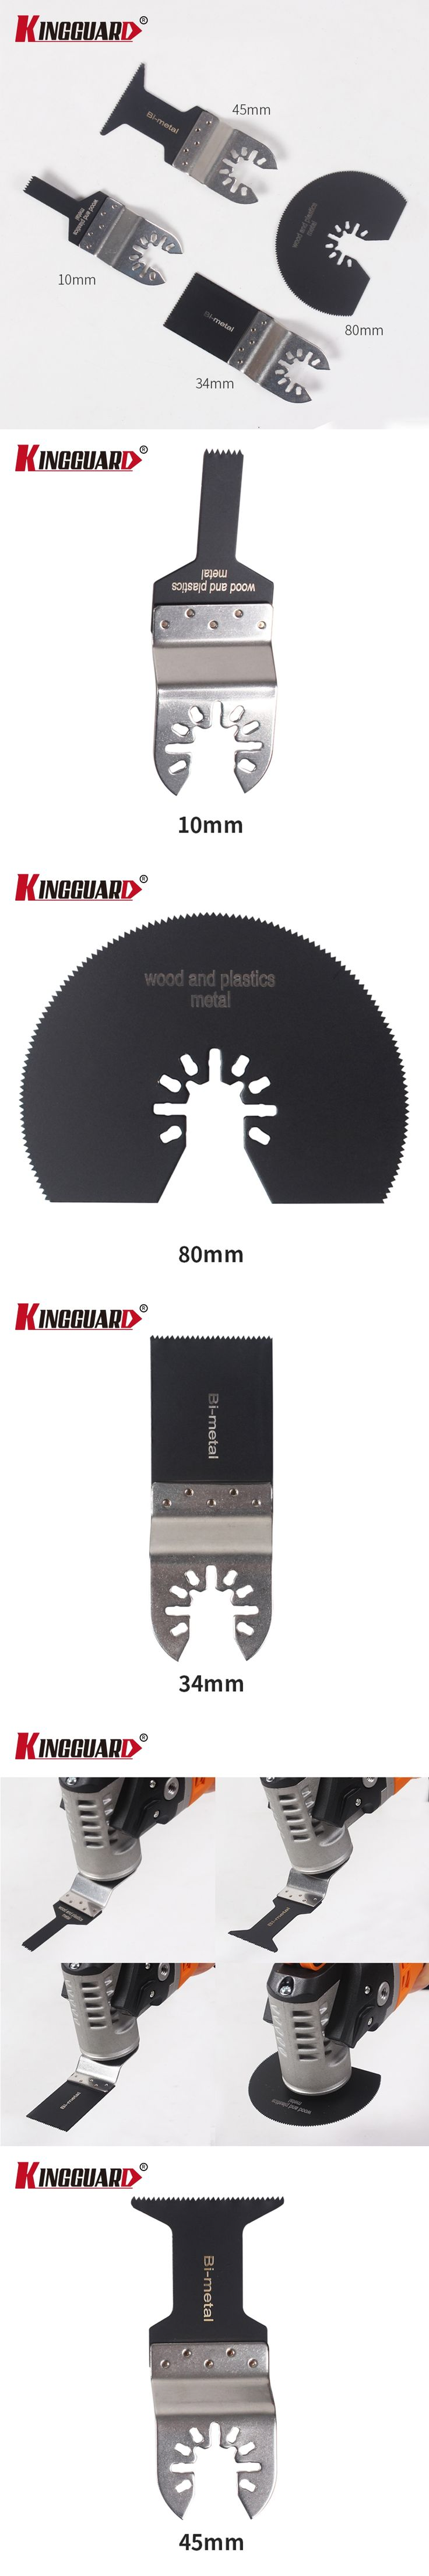 Best 25 dremel saw ideas on pinterest dremel cutter saw saw kingguard 1pcs oscillating tool saw blades accessories fit for multimaster power tools as fein dremel keyboard keysfo Image collections